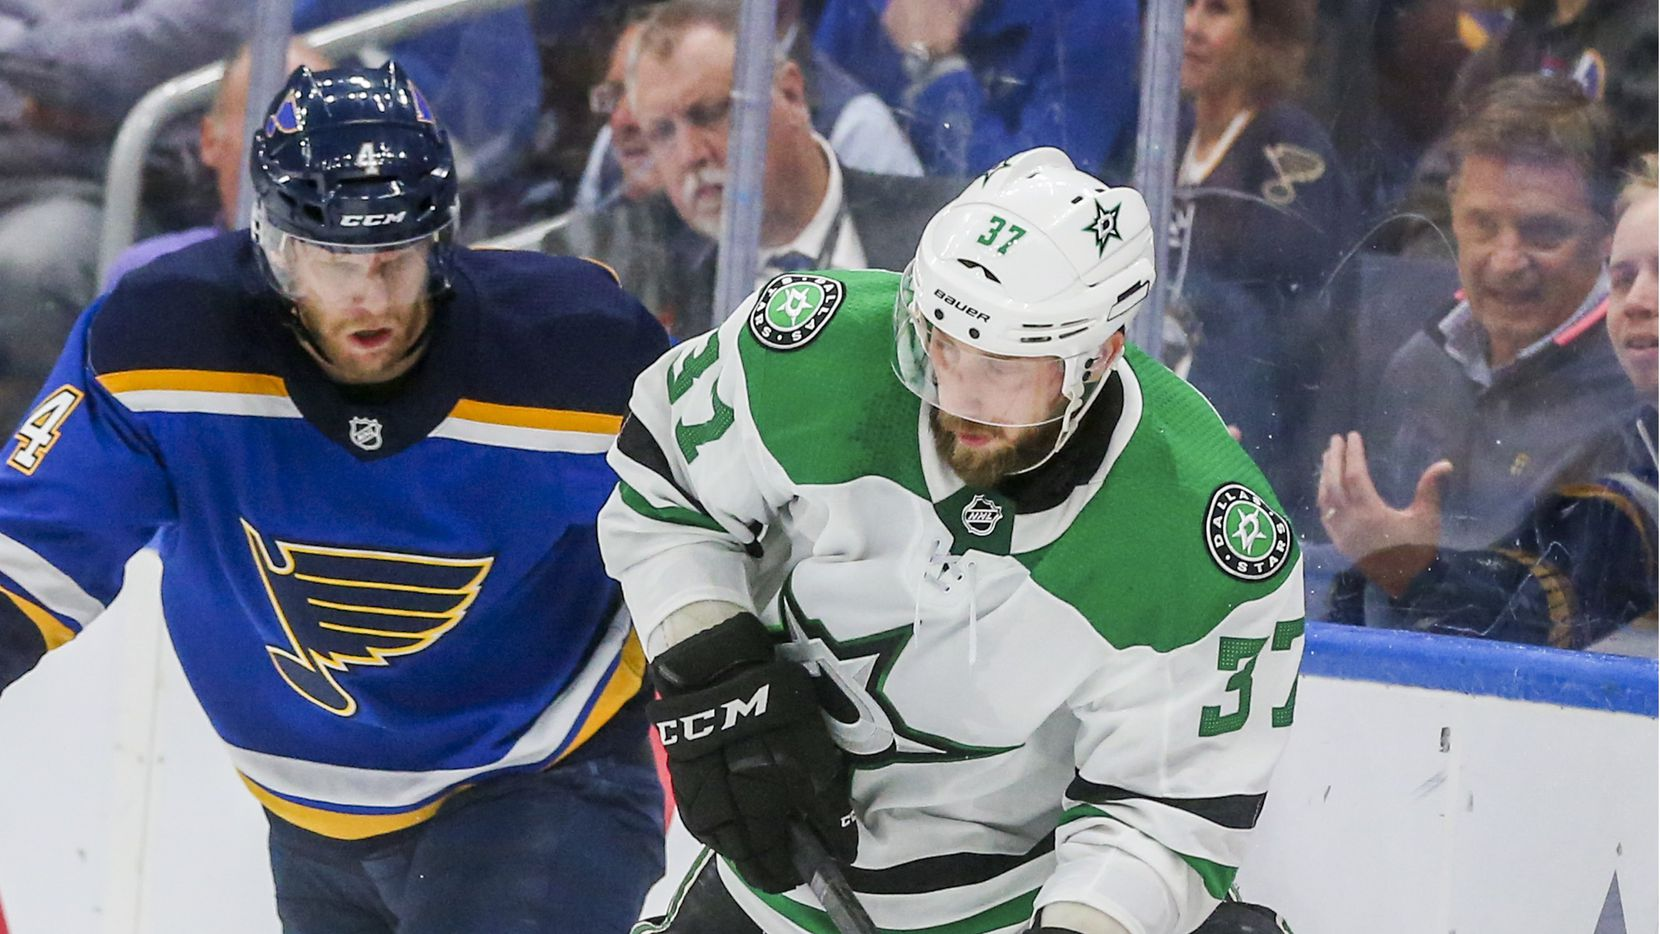 Dallas Stars center Justin Dowling (37) looks to make a pass as he is defended by St. Louis Blues defenseman Carl Gunnarsson (4) during the second period of game 5 of an NHL second round playoff series at Enterprise Center in St. Louis, Missouri on Friday, May 3, 2019.